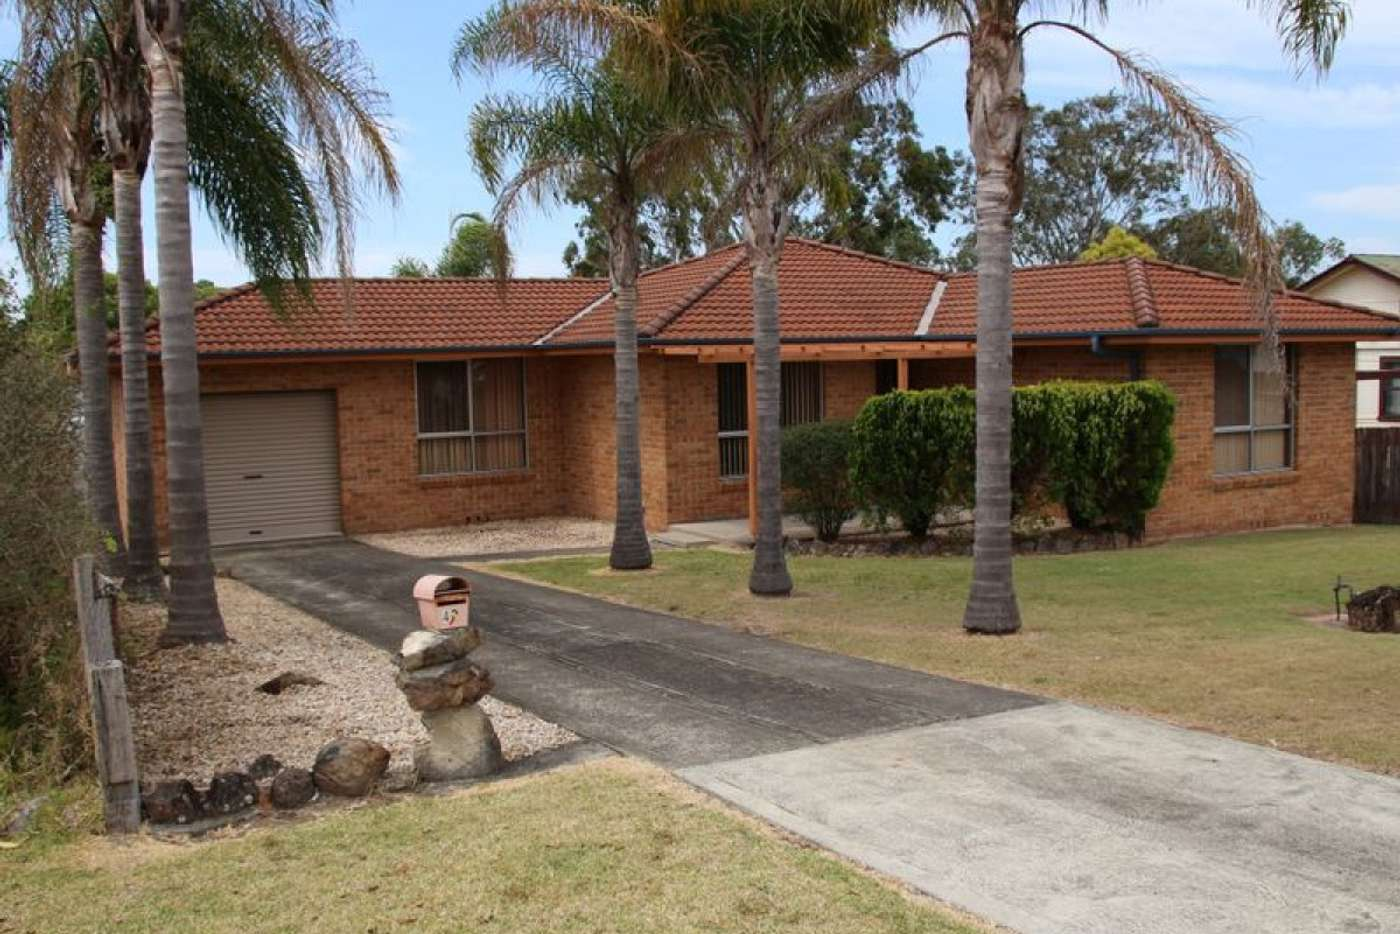 Main view of Homely house listing, 43 Marlee Street, Wingham NSW 2429